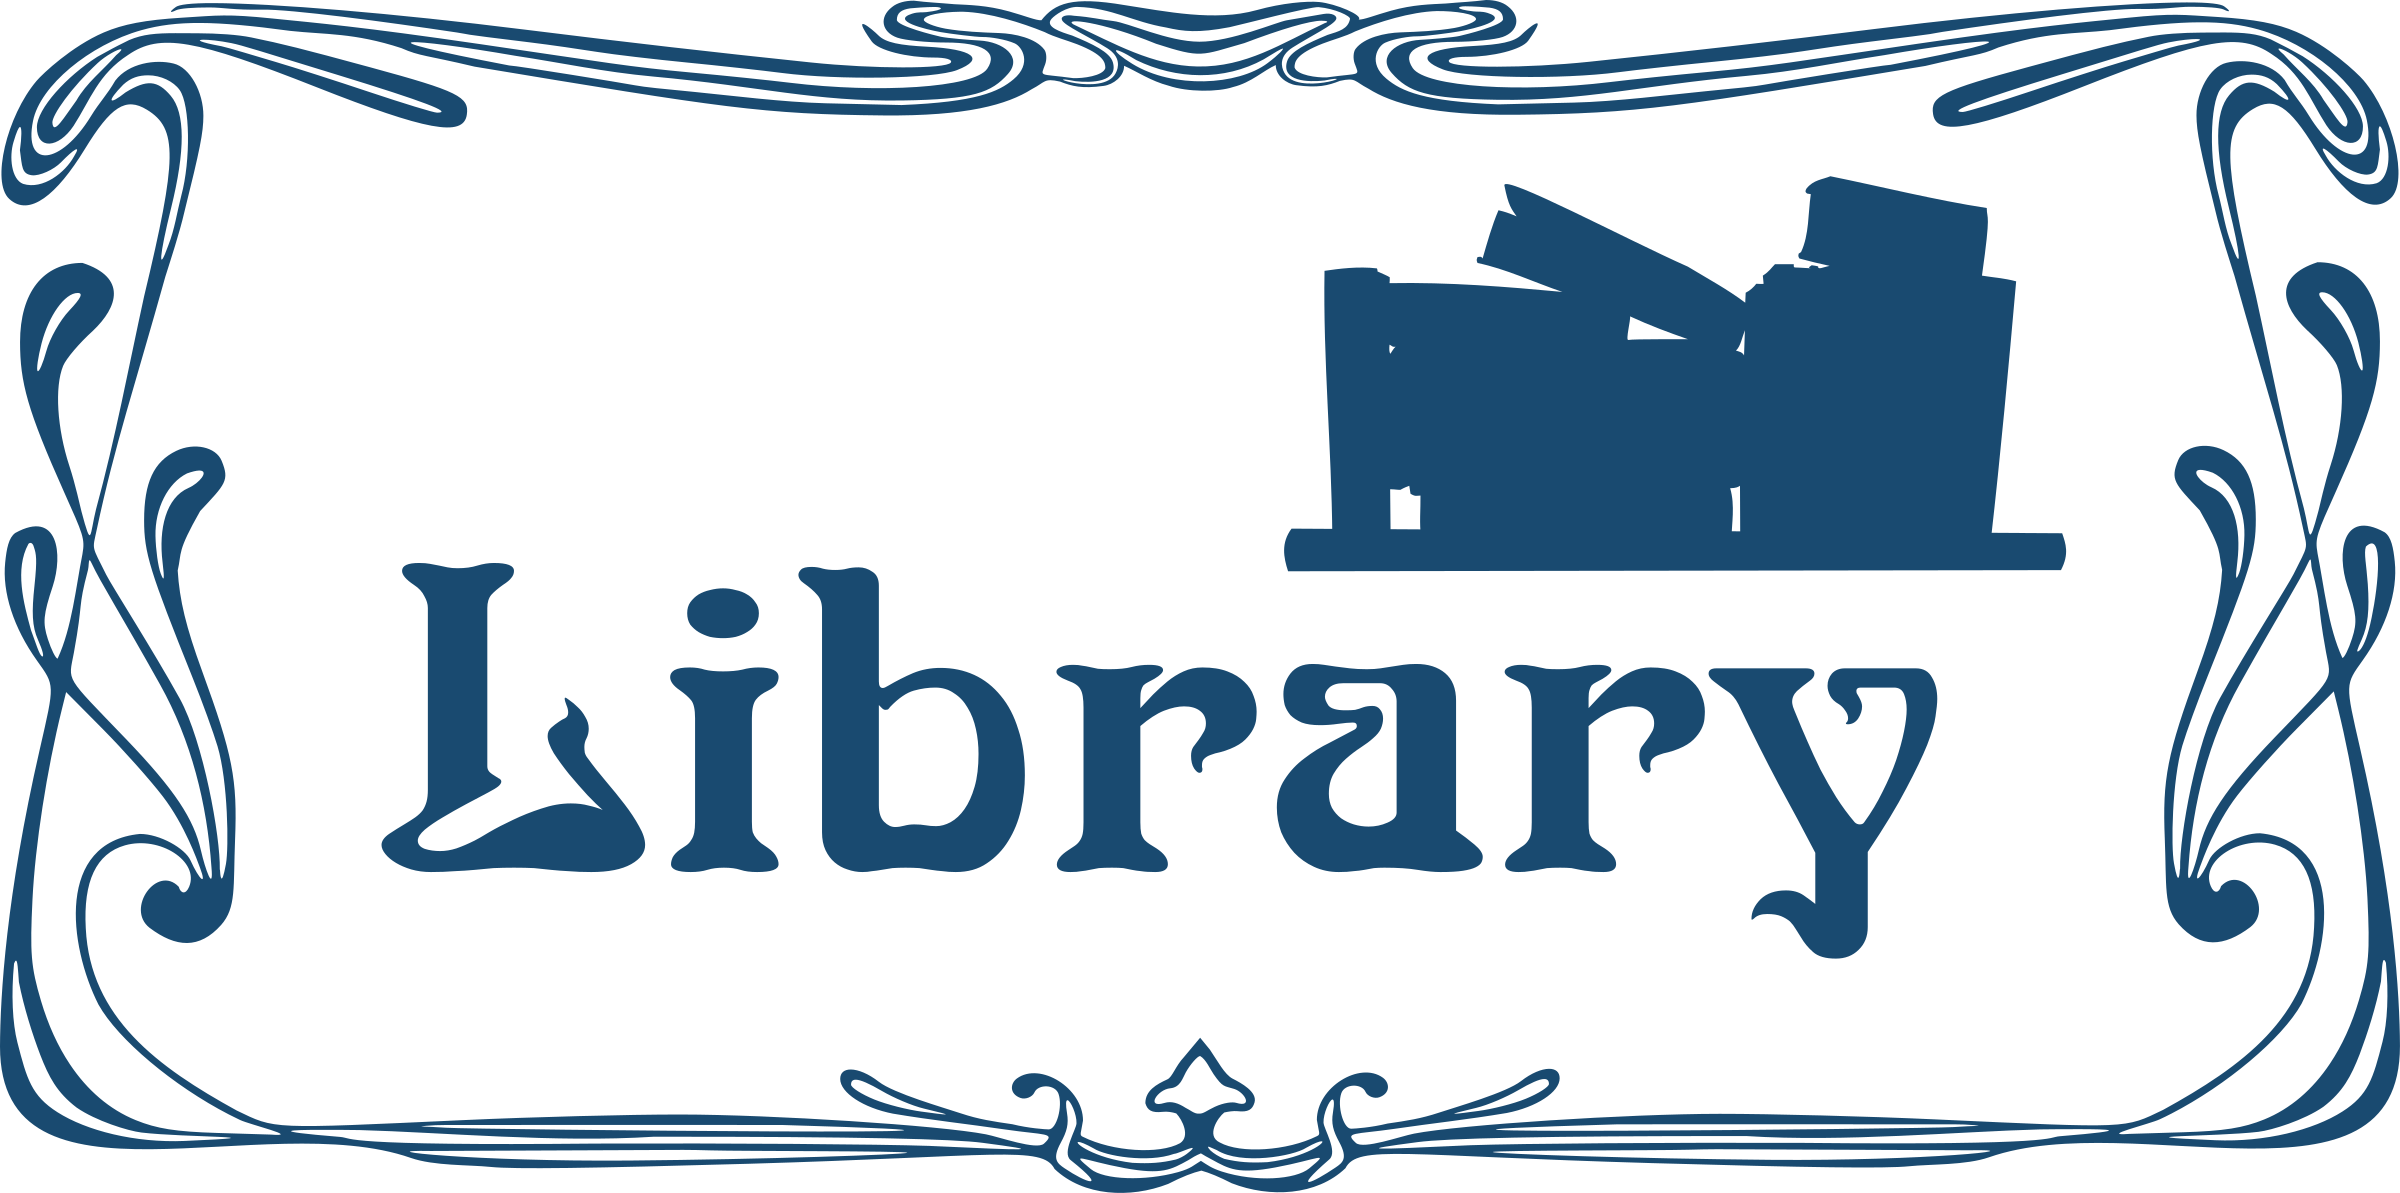 Library door sign by Moini